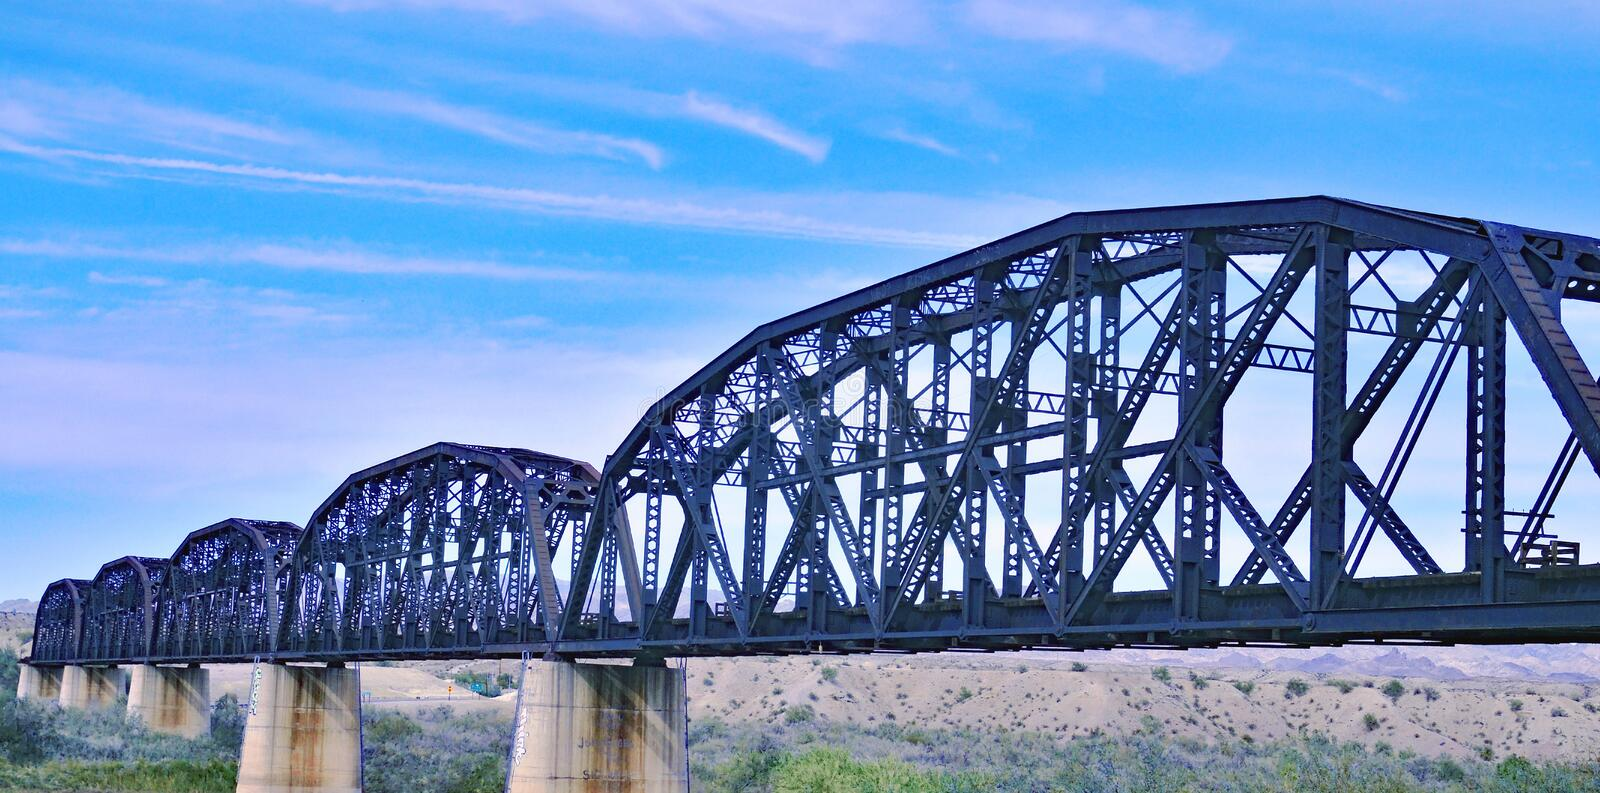 Details Of Steel Railroad Bridge Over Colorado River stock photography